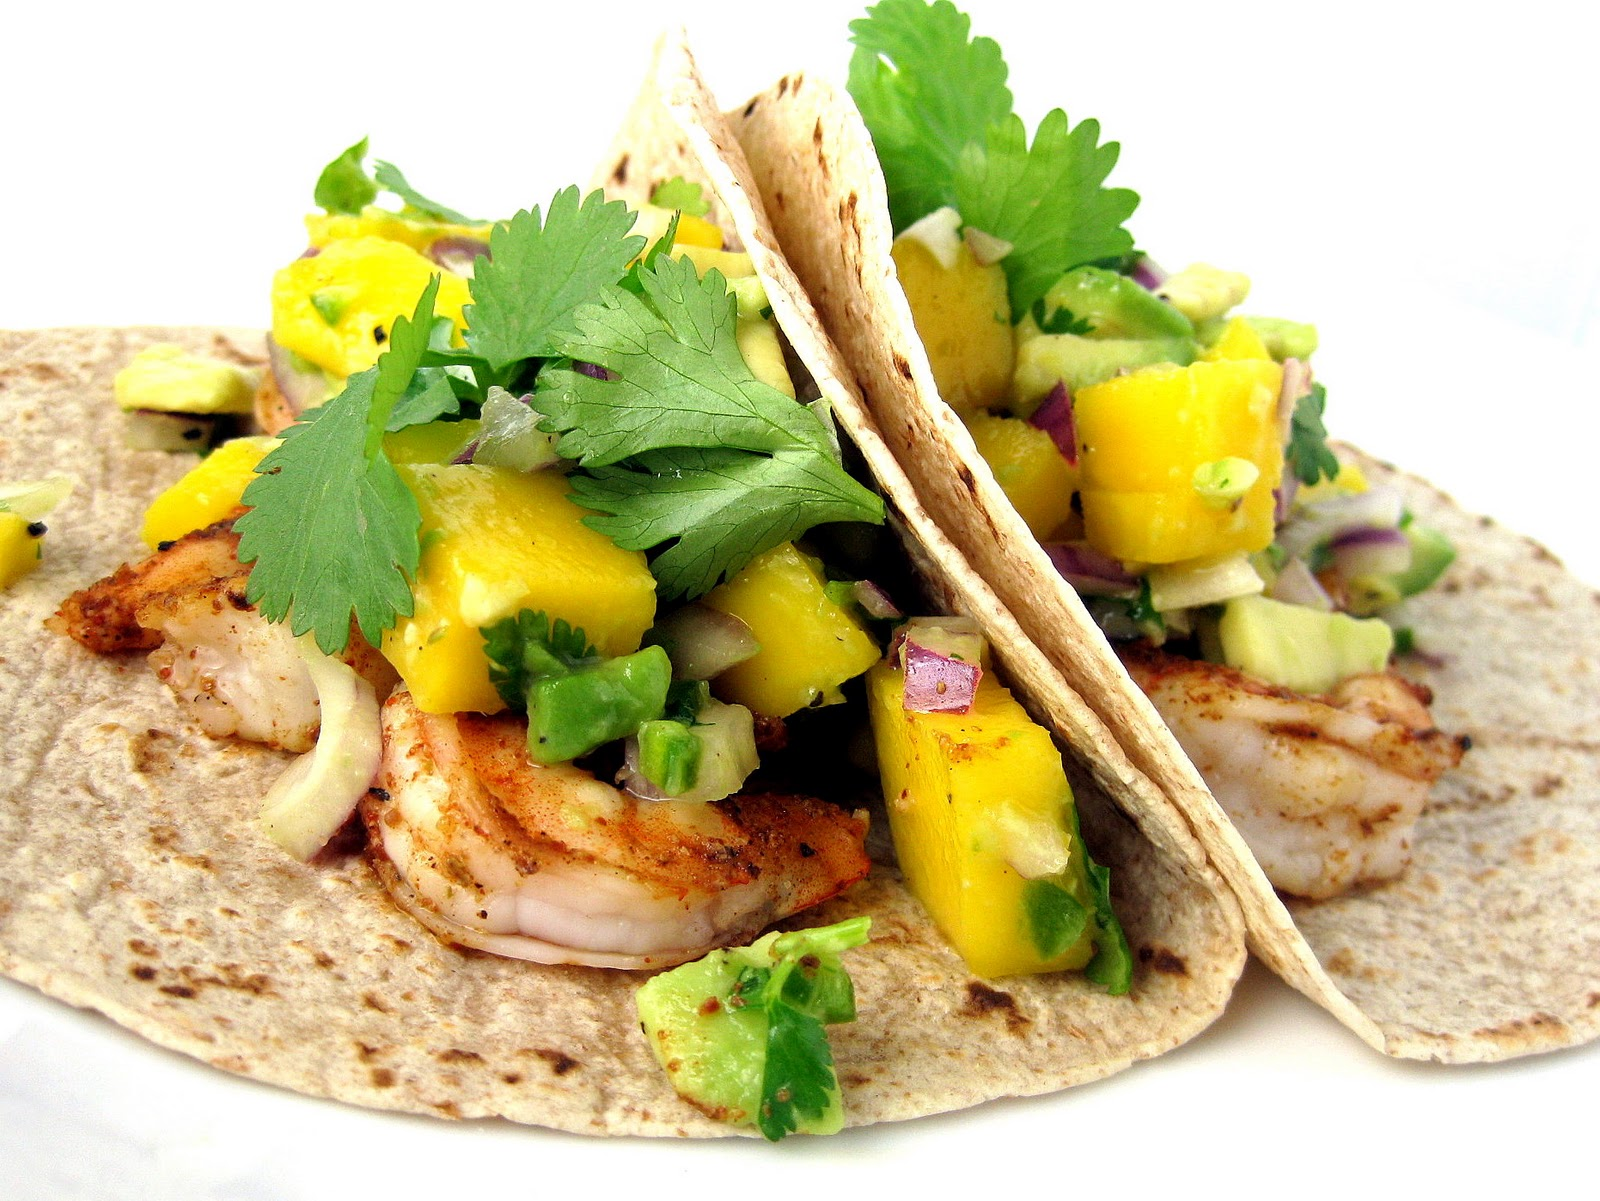 Grilled Chipotle Shrimp Tacos with Mango Avocado Salsa | A Hint of ...